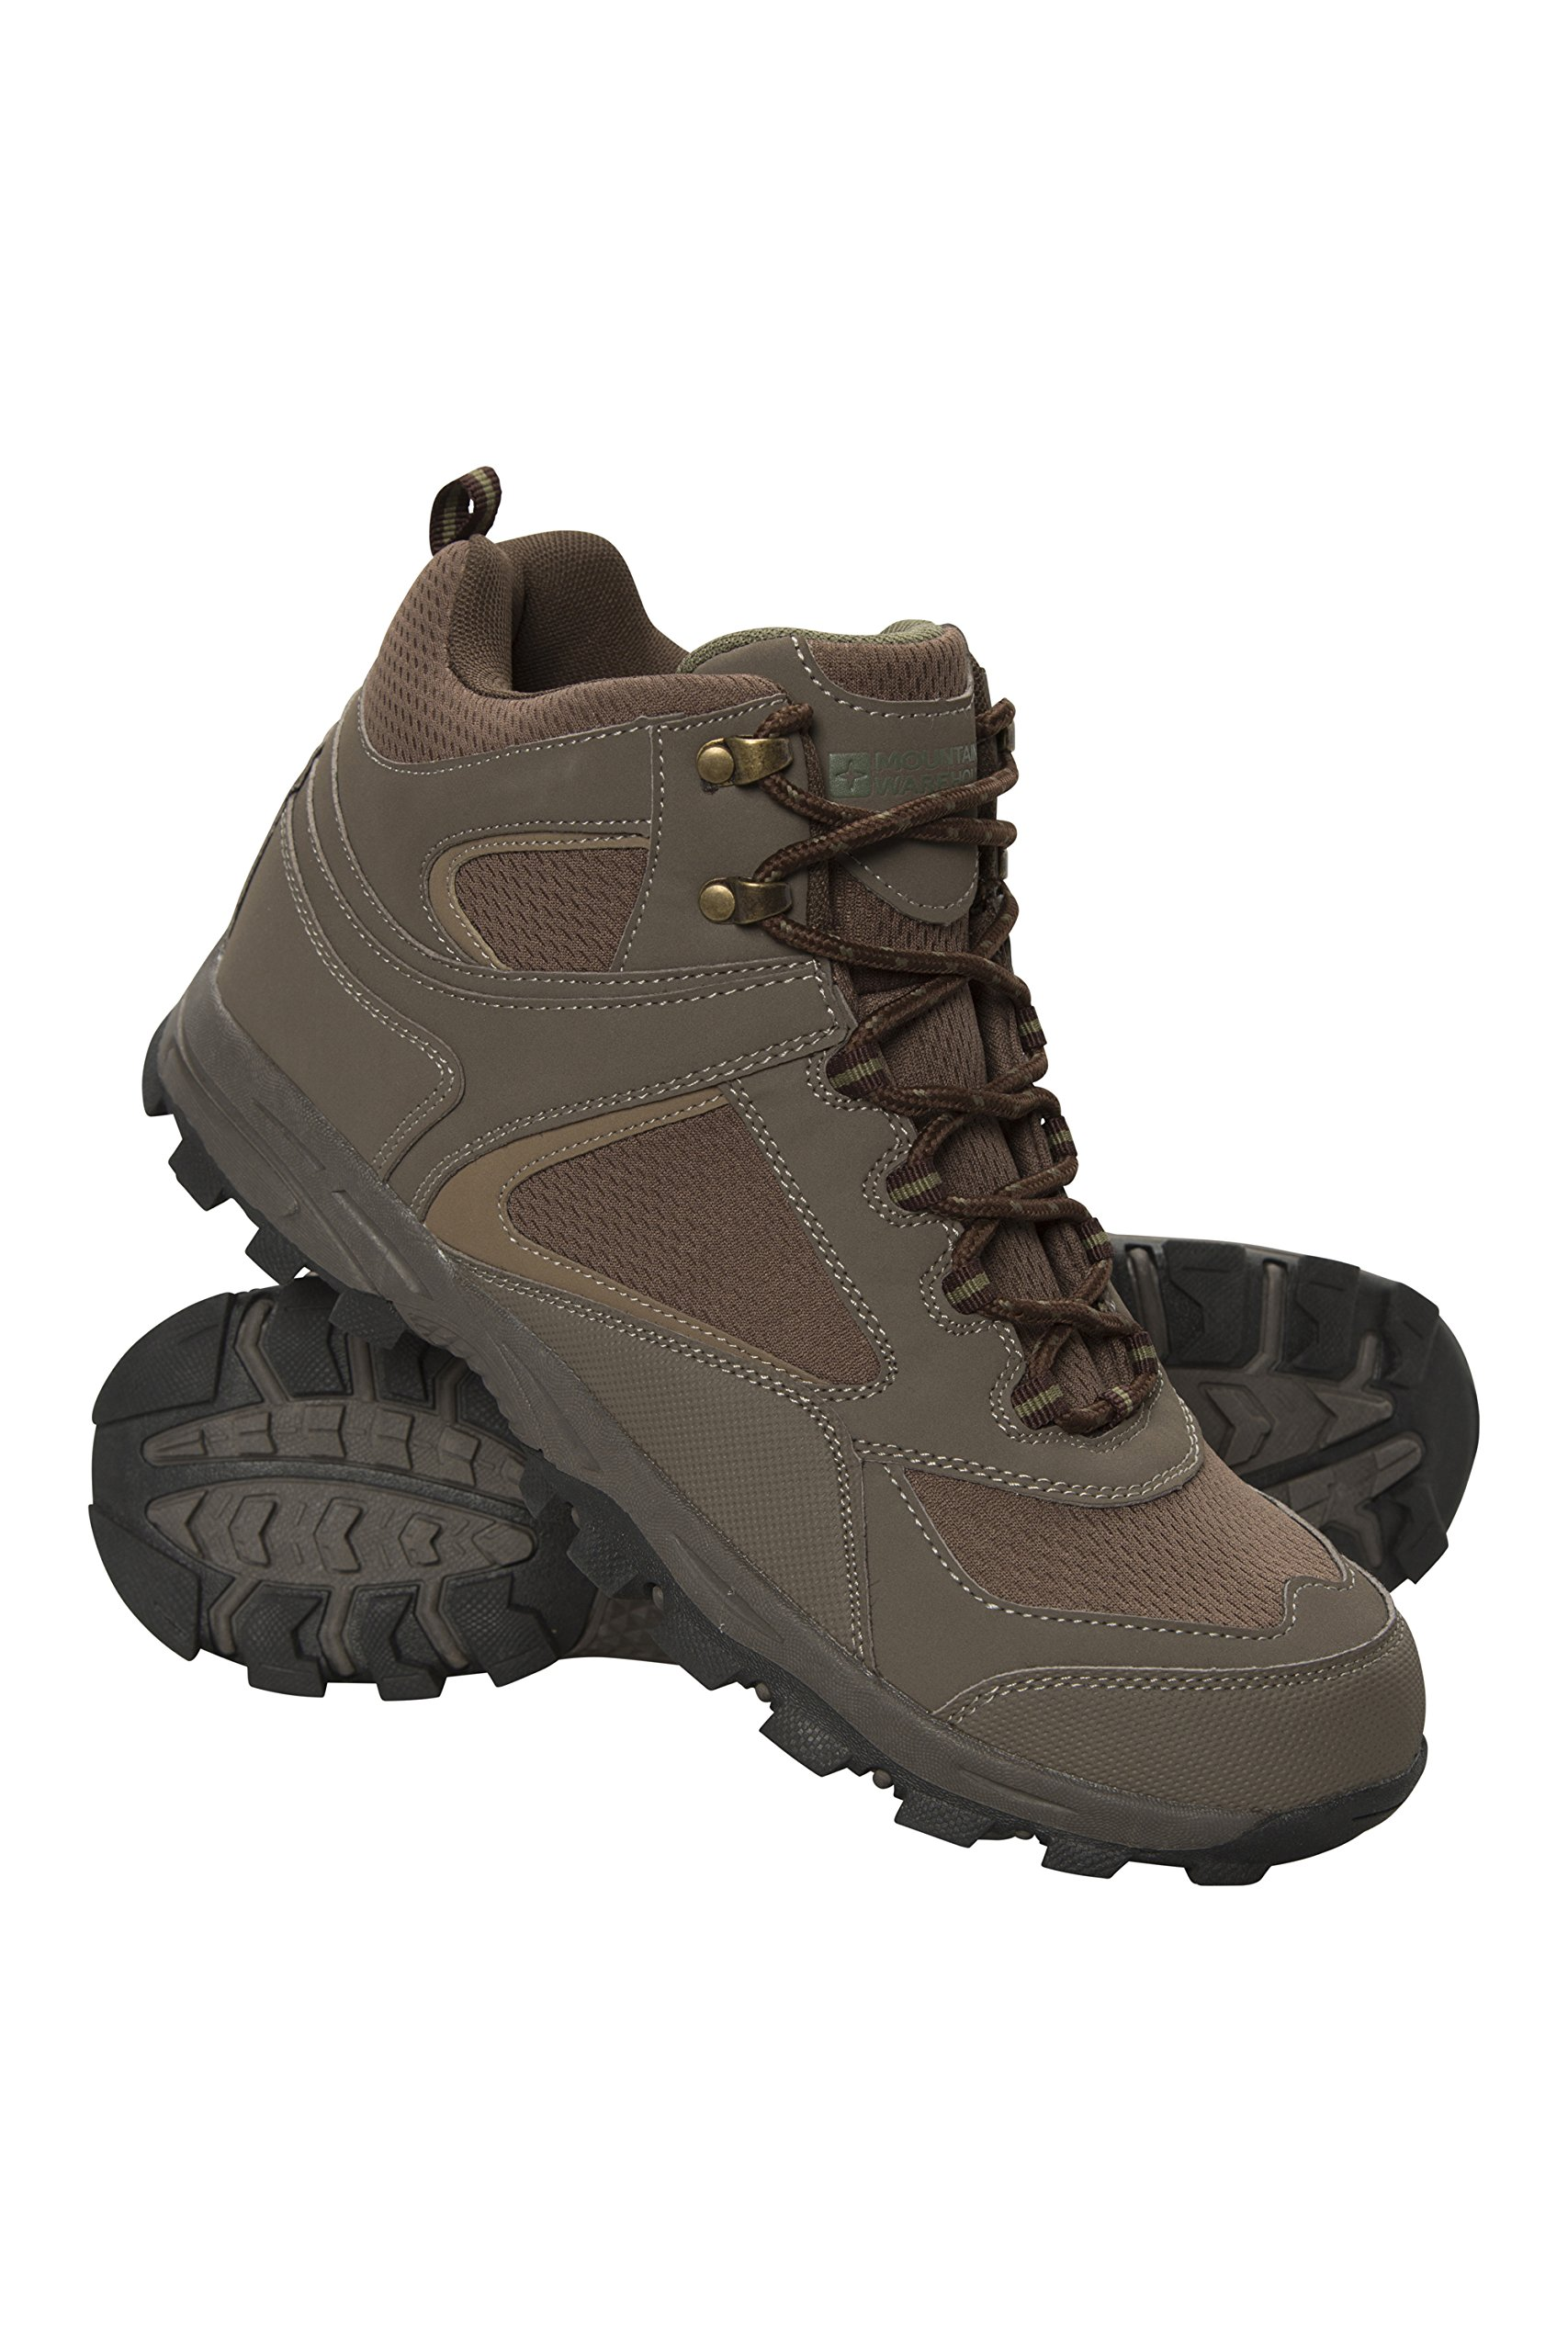 Mountain Warehouse Mcleod Men's Boots - Summer Hiking Boots Khaki 8 M US Men